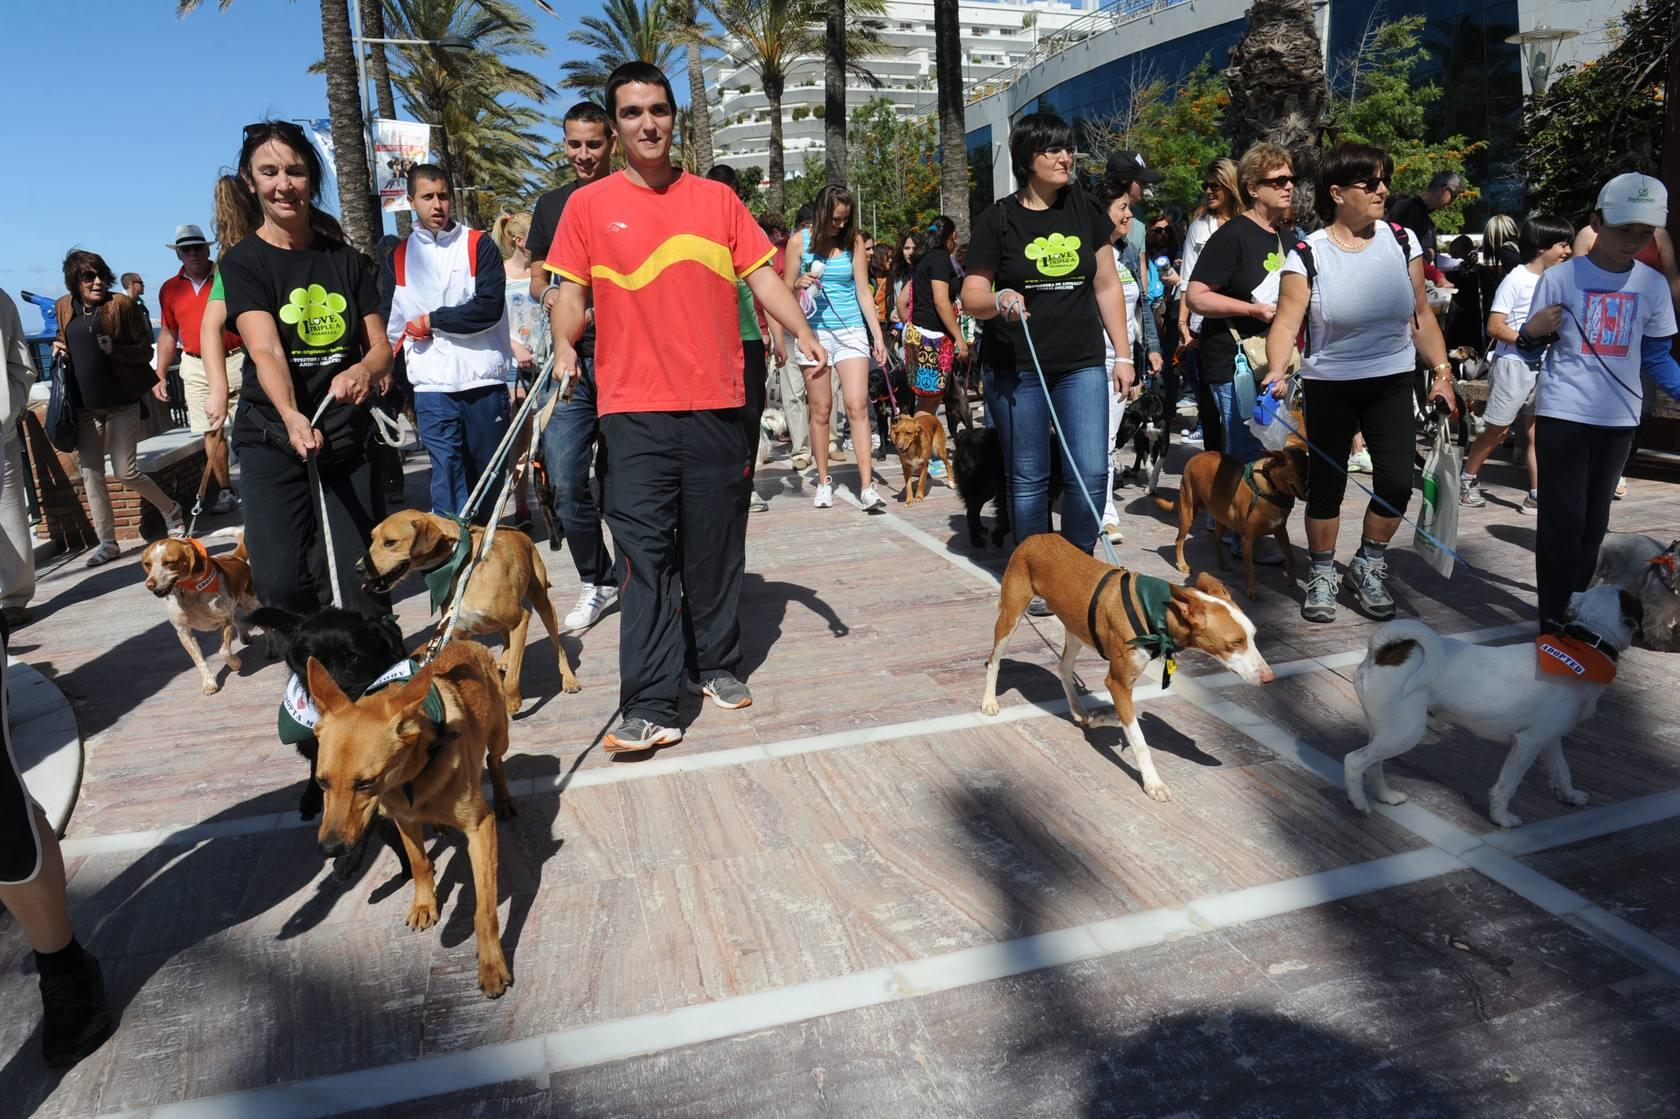 Caminata solidaria de la asociaci&oacute;n Triple A de Marbella